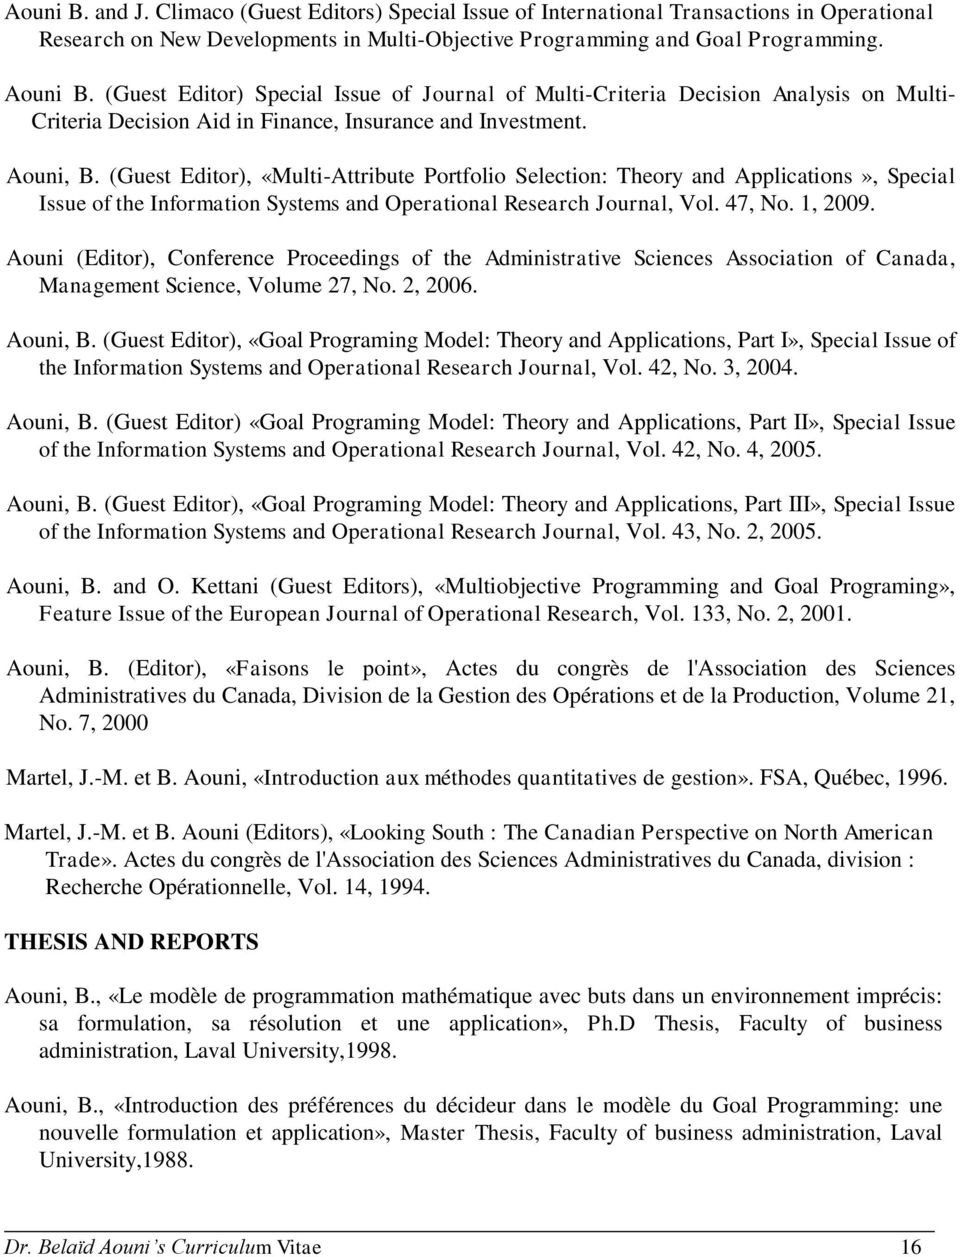 (Guest Editor), «Multi-Attribute Portfolio Selection: Theory and Applications», Special Issue of the Information Systems and Operational Research Journal, Vol. 47, No. 1, 2009.